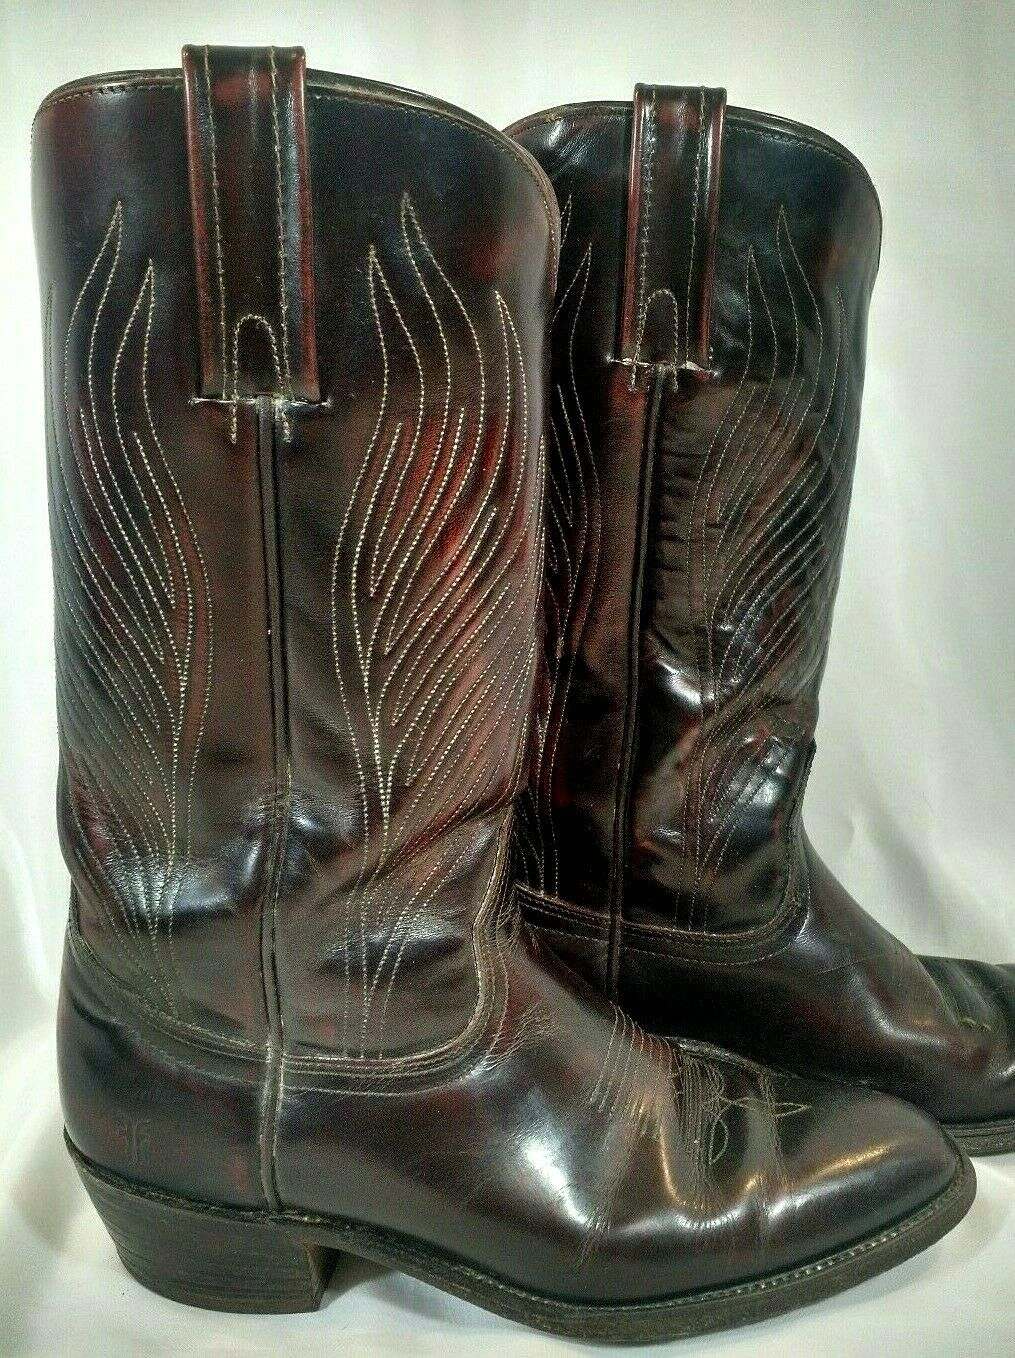 FRYE Western Cowboy Reddish Brown Boots Pull On 3280 10D Flames 70s 80s Oxblood